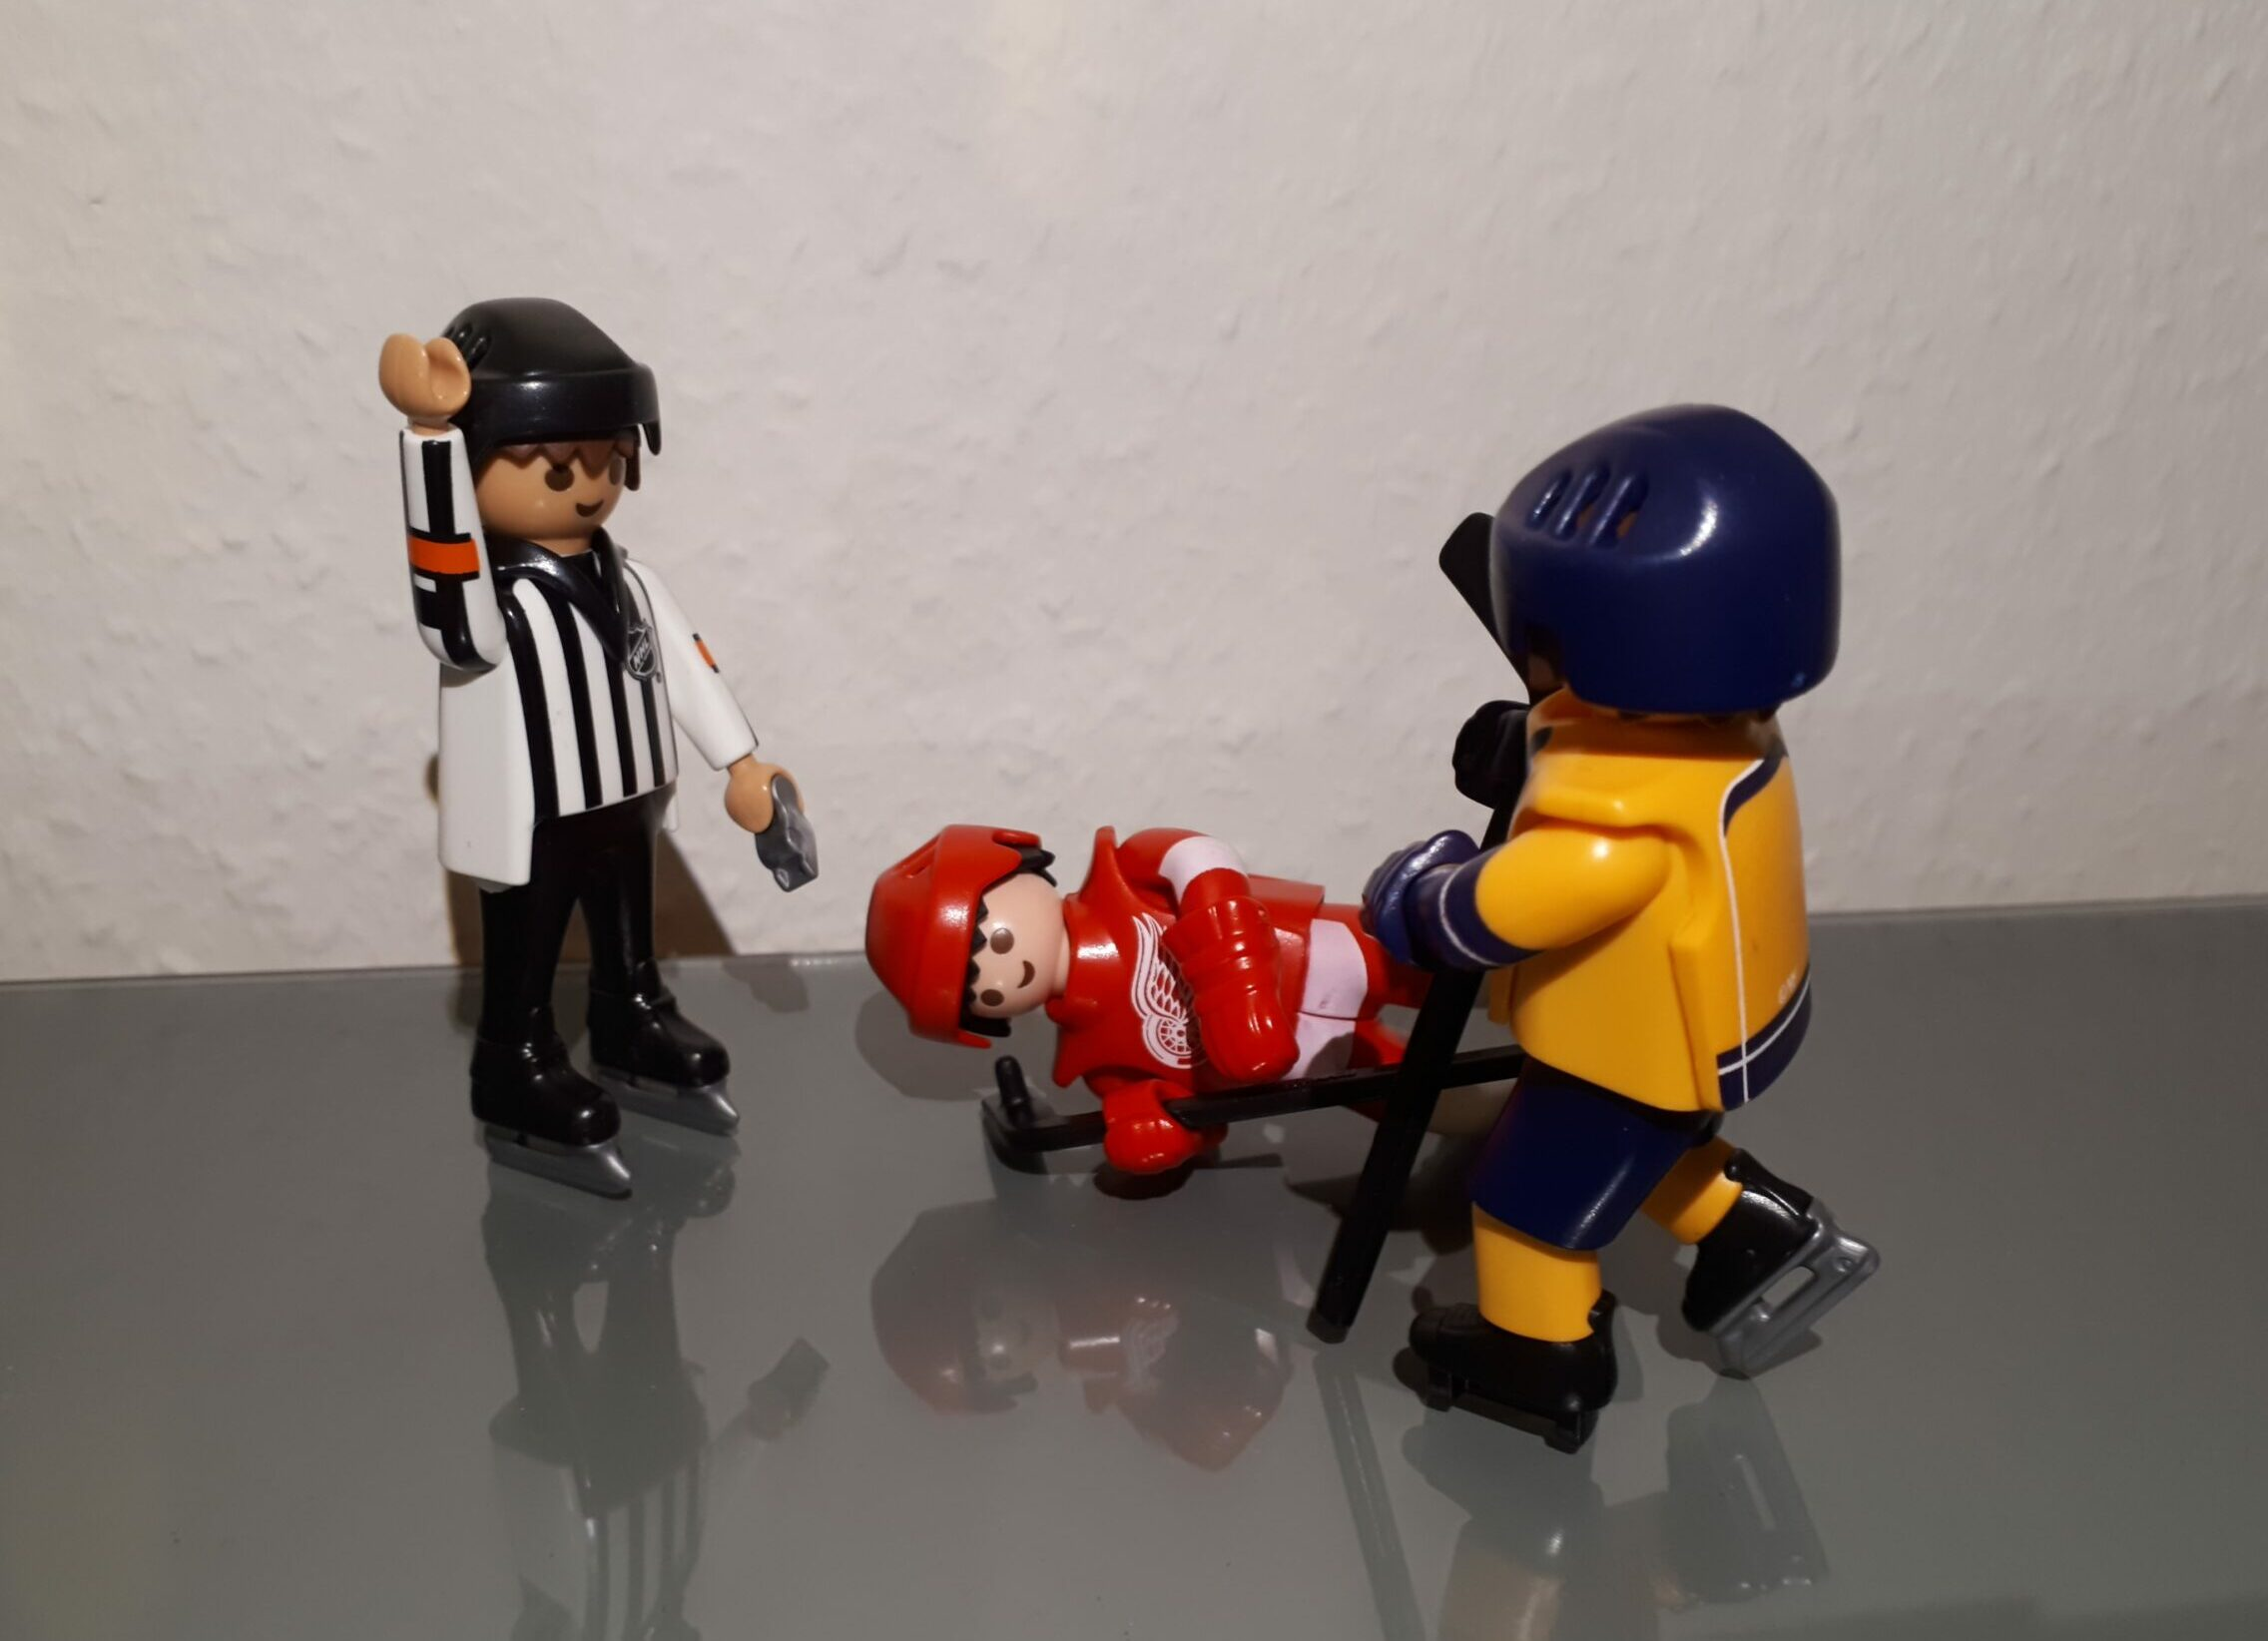 #032 NHL New York Islanders with Arthur Staple – and a referee controversy